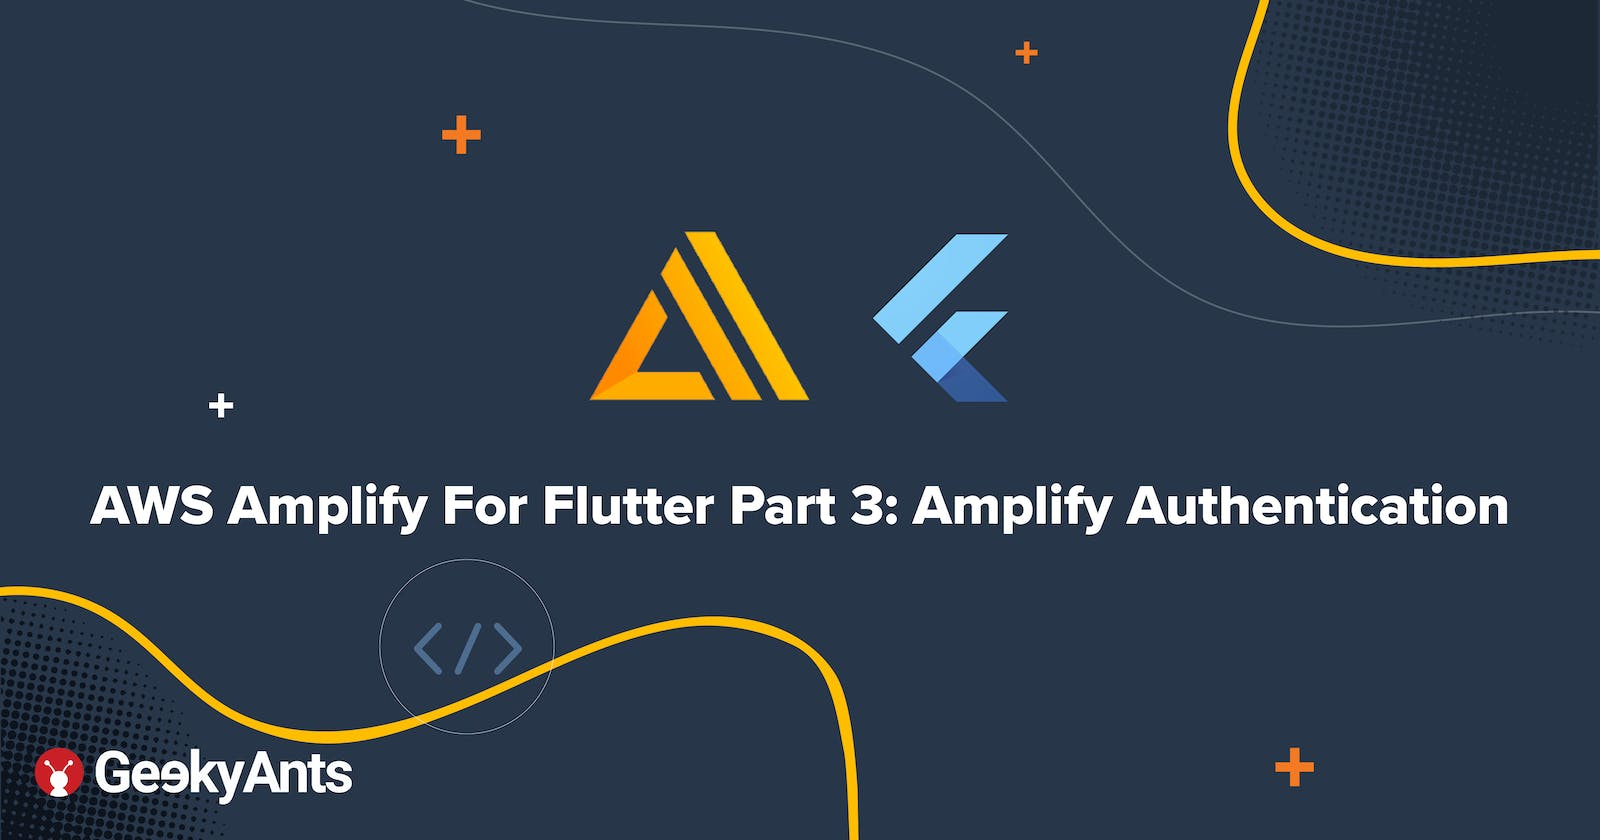 AWS Amplify For Flutter Part 3: Amplify Authentication